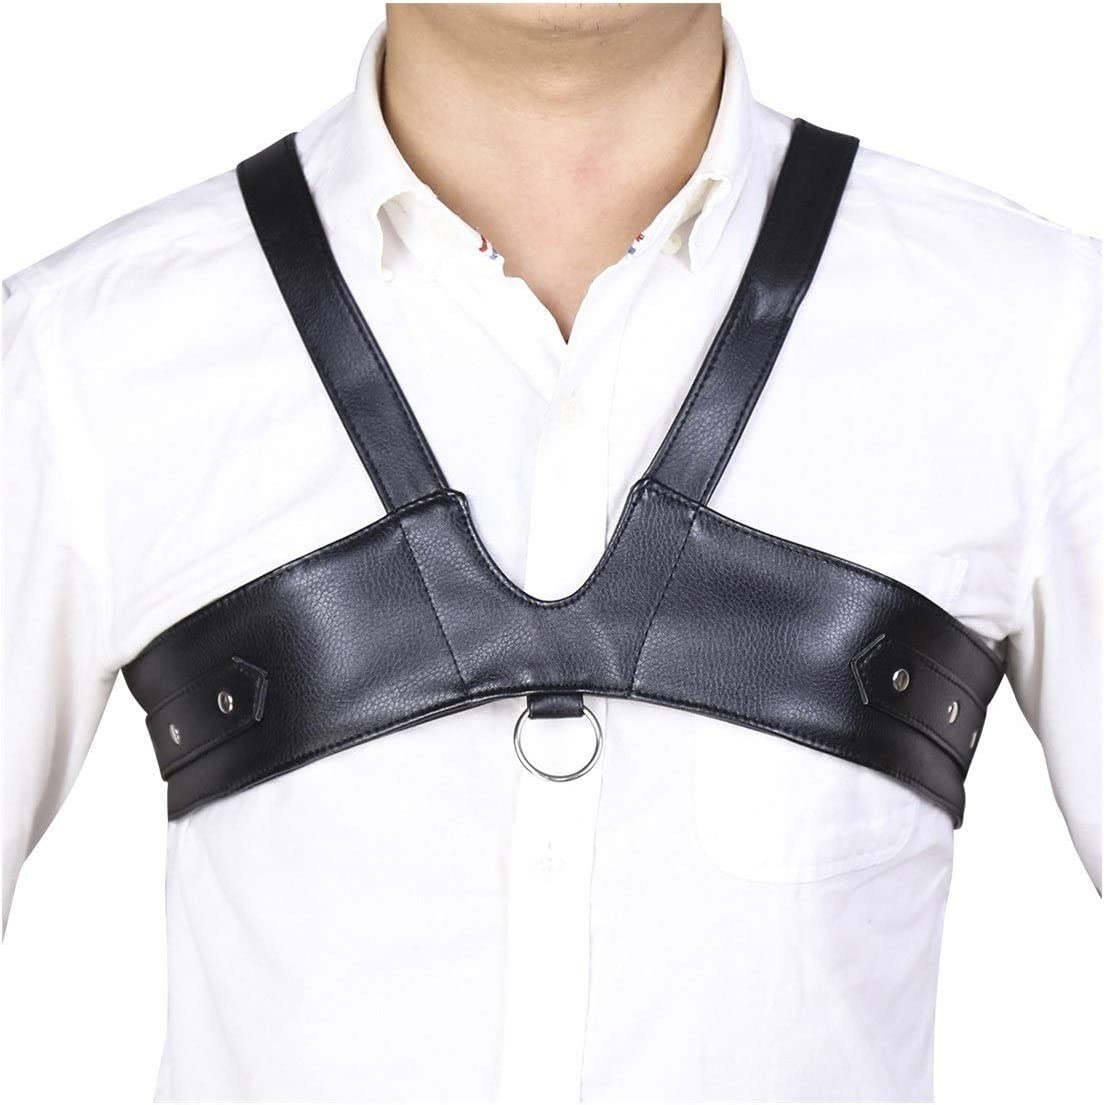 OFFicial shop QYXJJ Gothic Belt Harness for All stores are sold Leather Body G Women